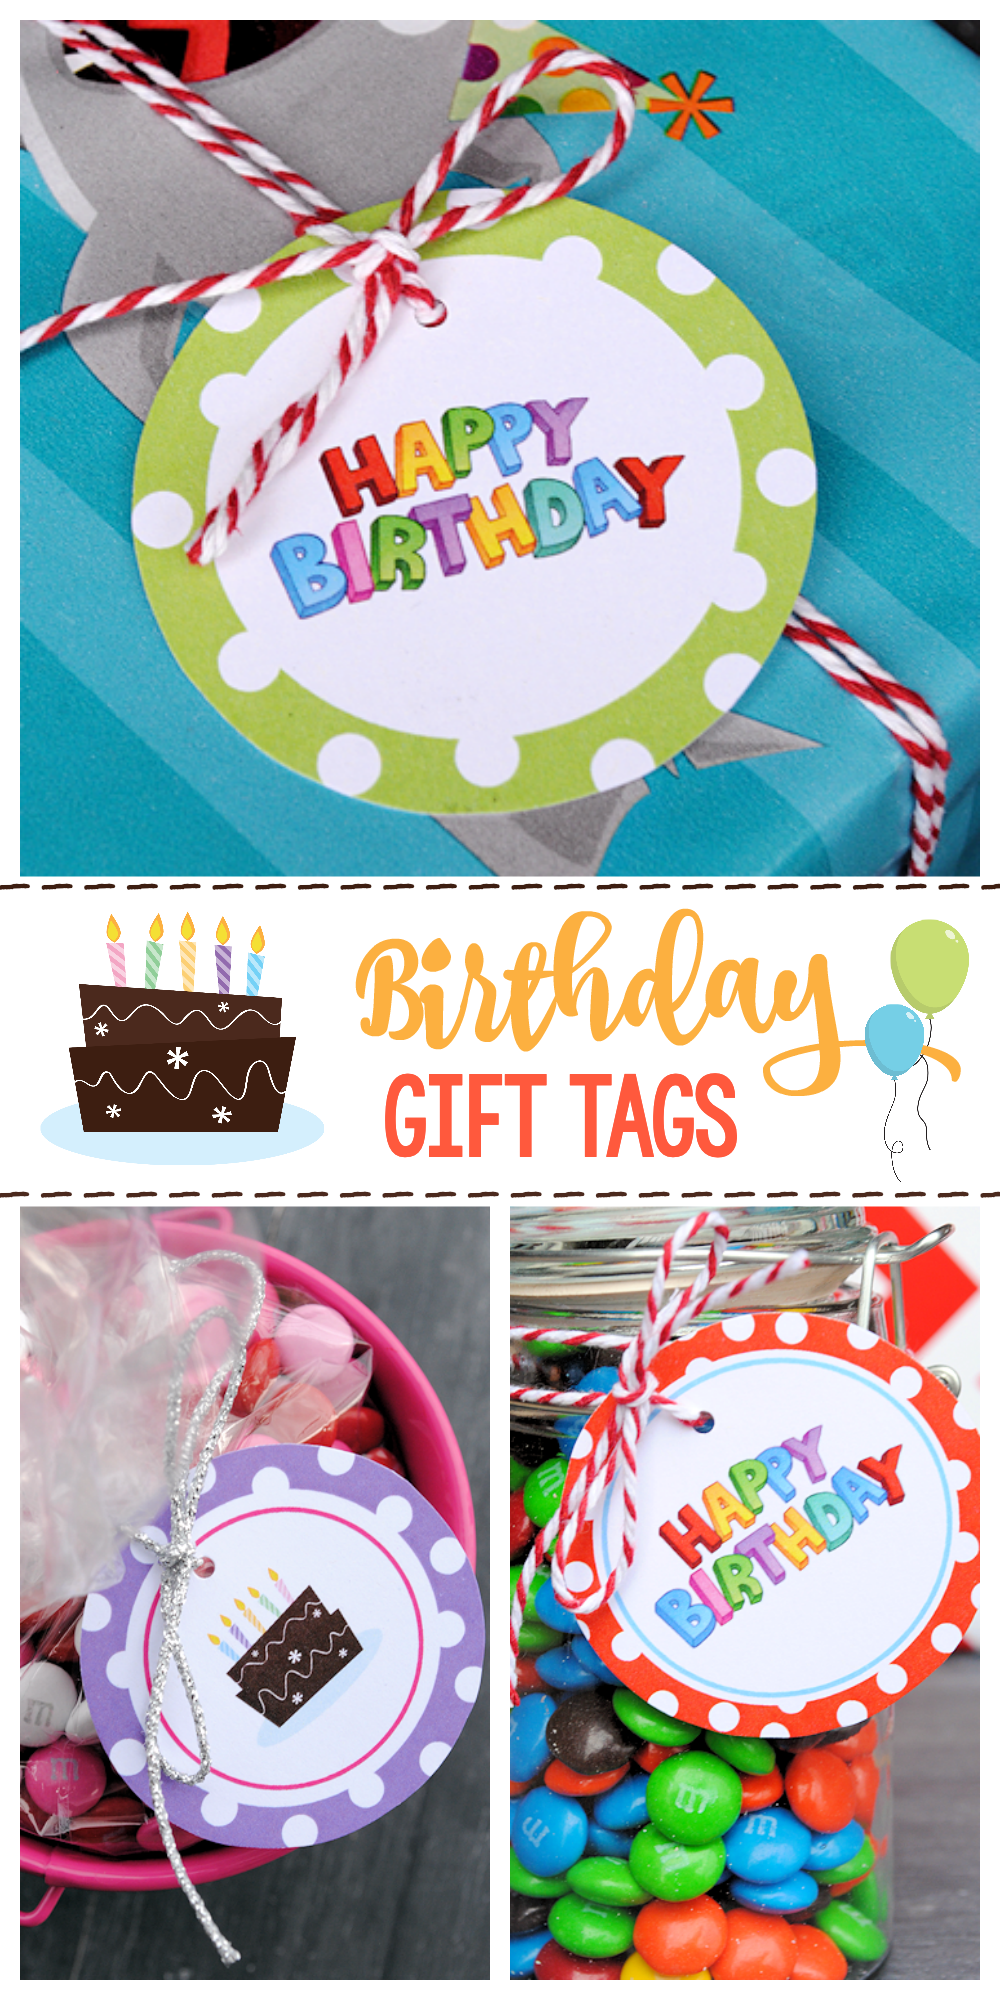 Free Printable Birthday Gift Tags All You Need To Do Is Print These